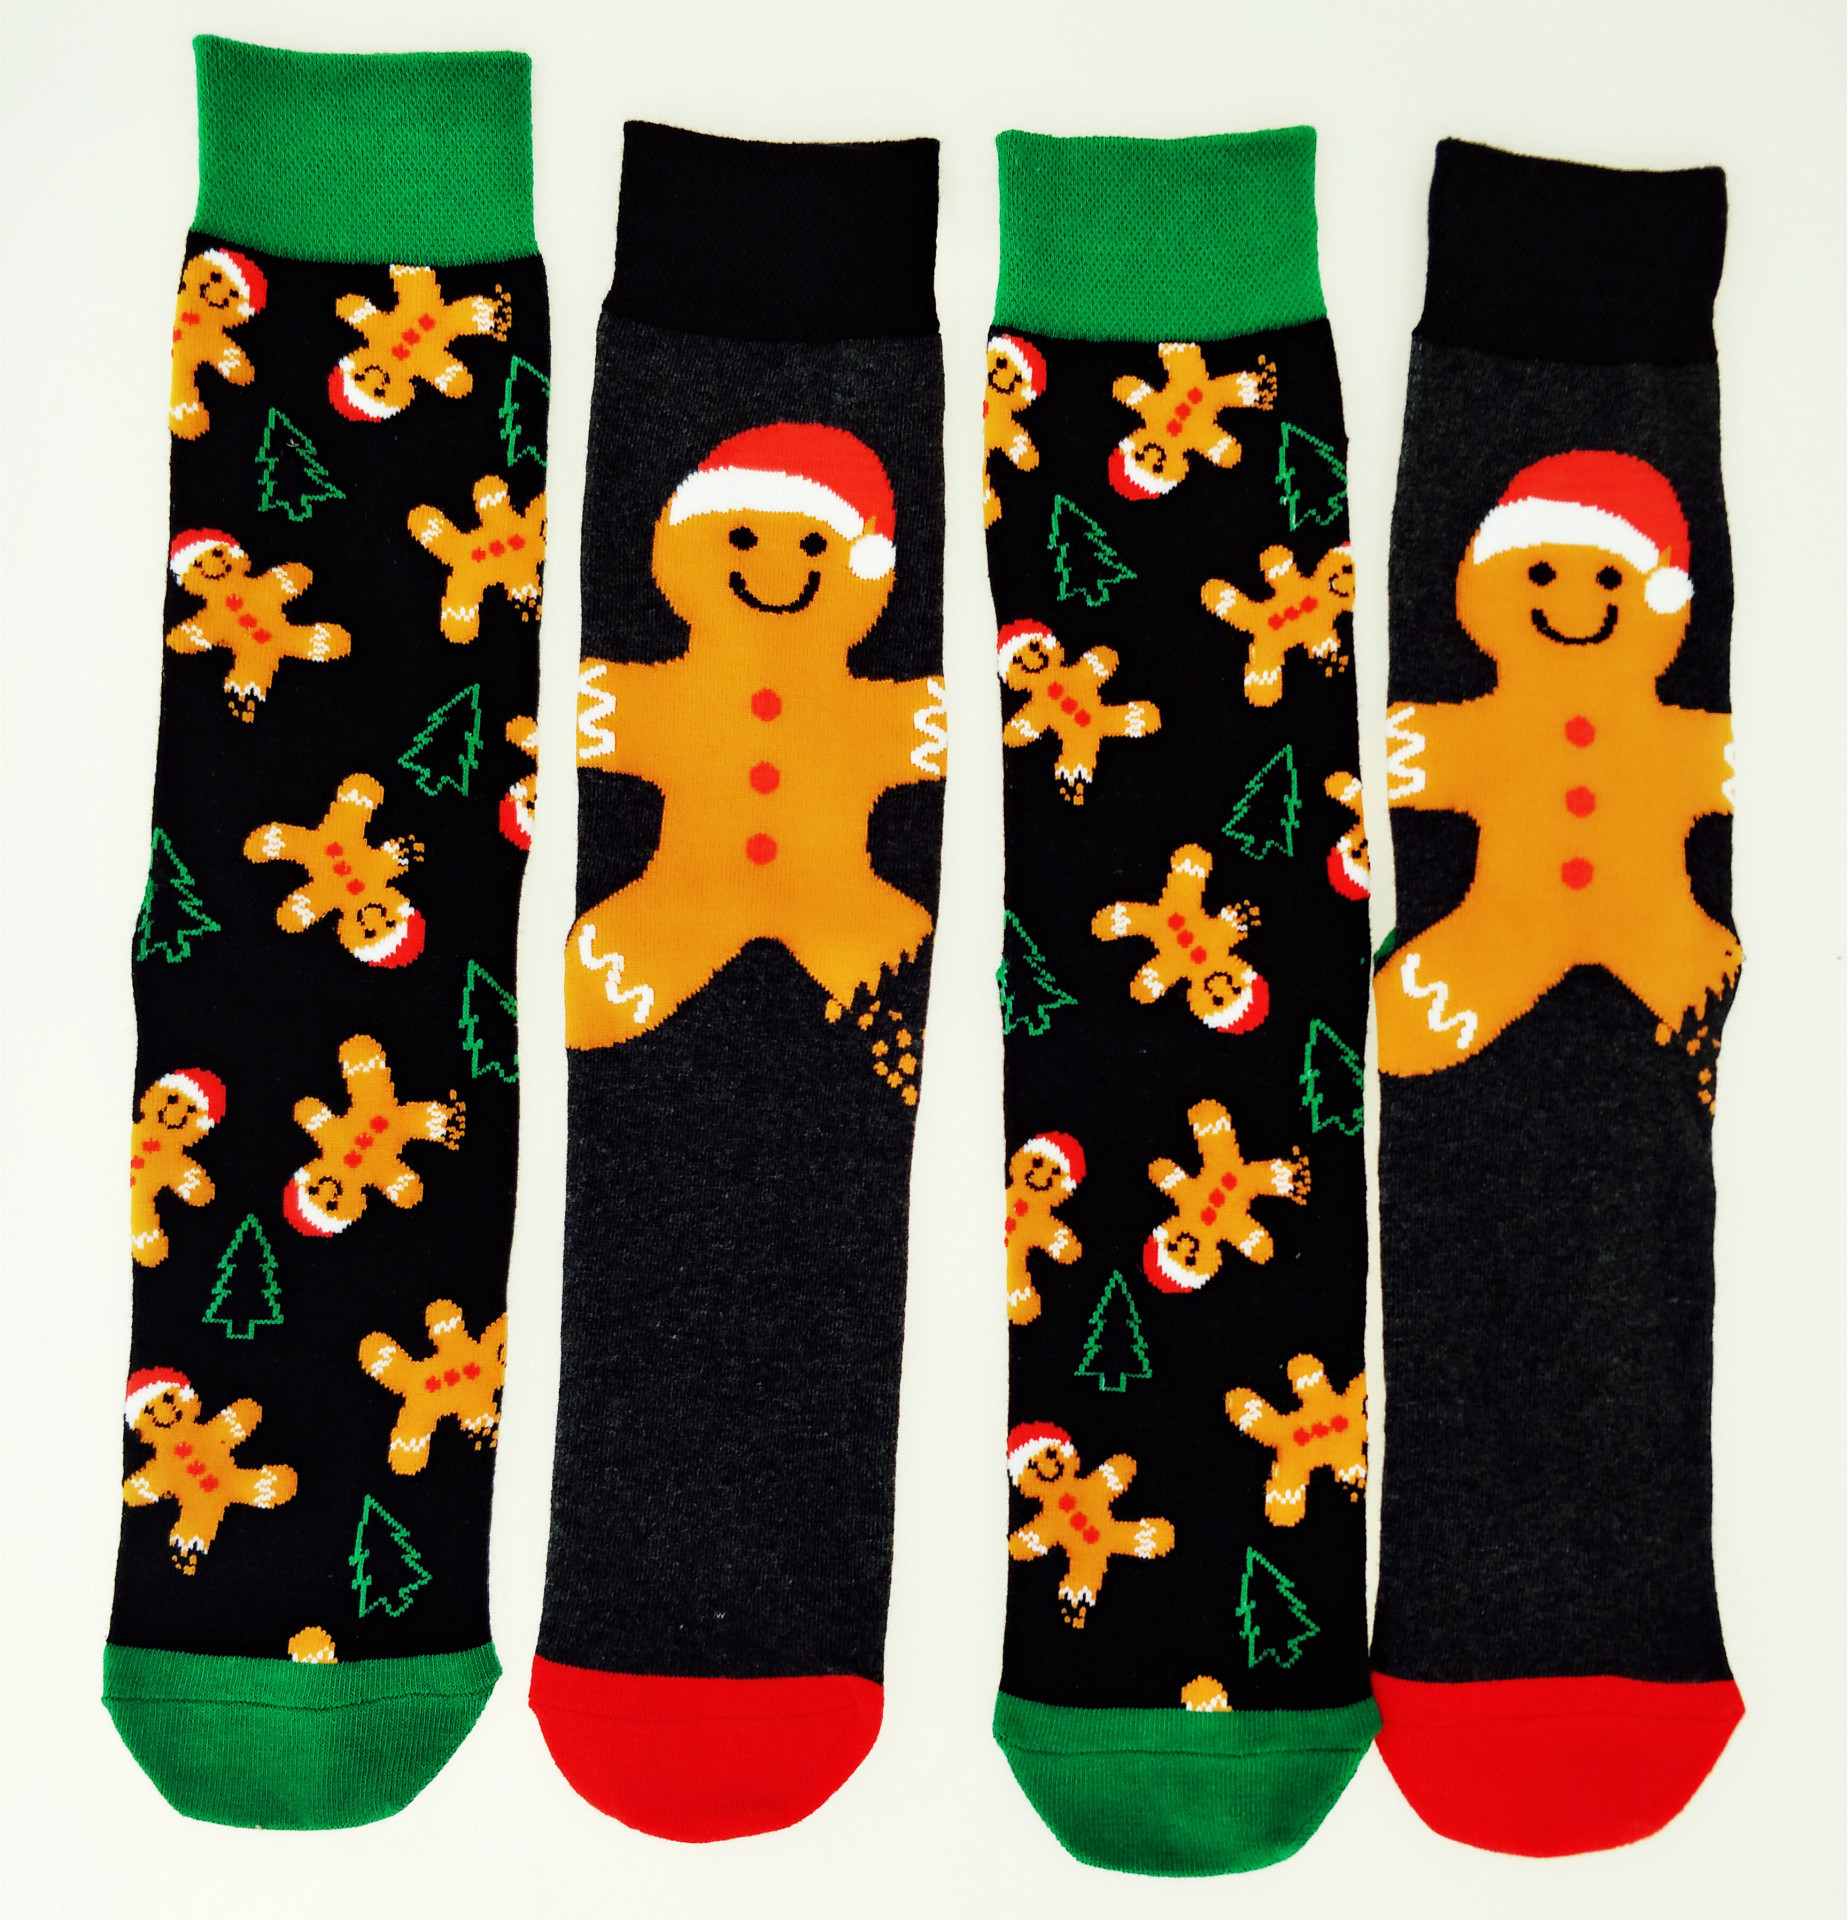 2018 new Christmas socks men personality sweat absorbent breathable cotton socks in the snow doll series